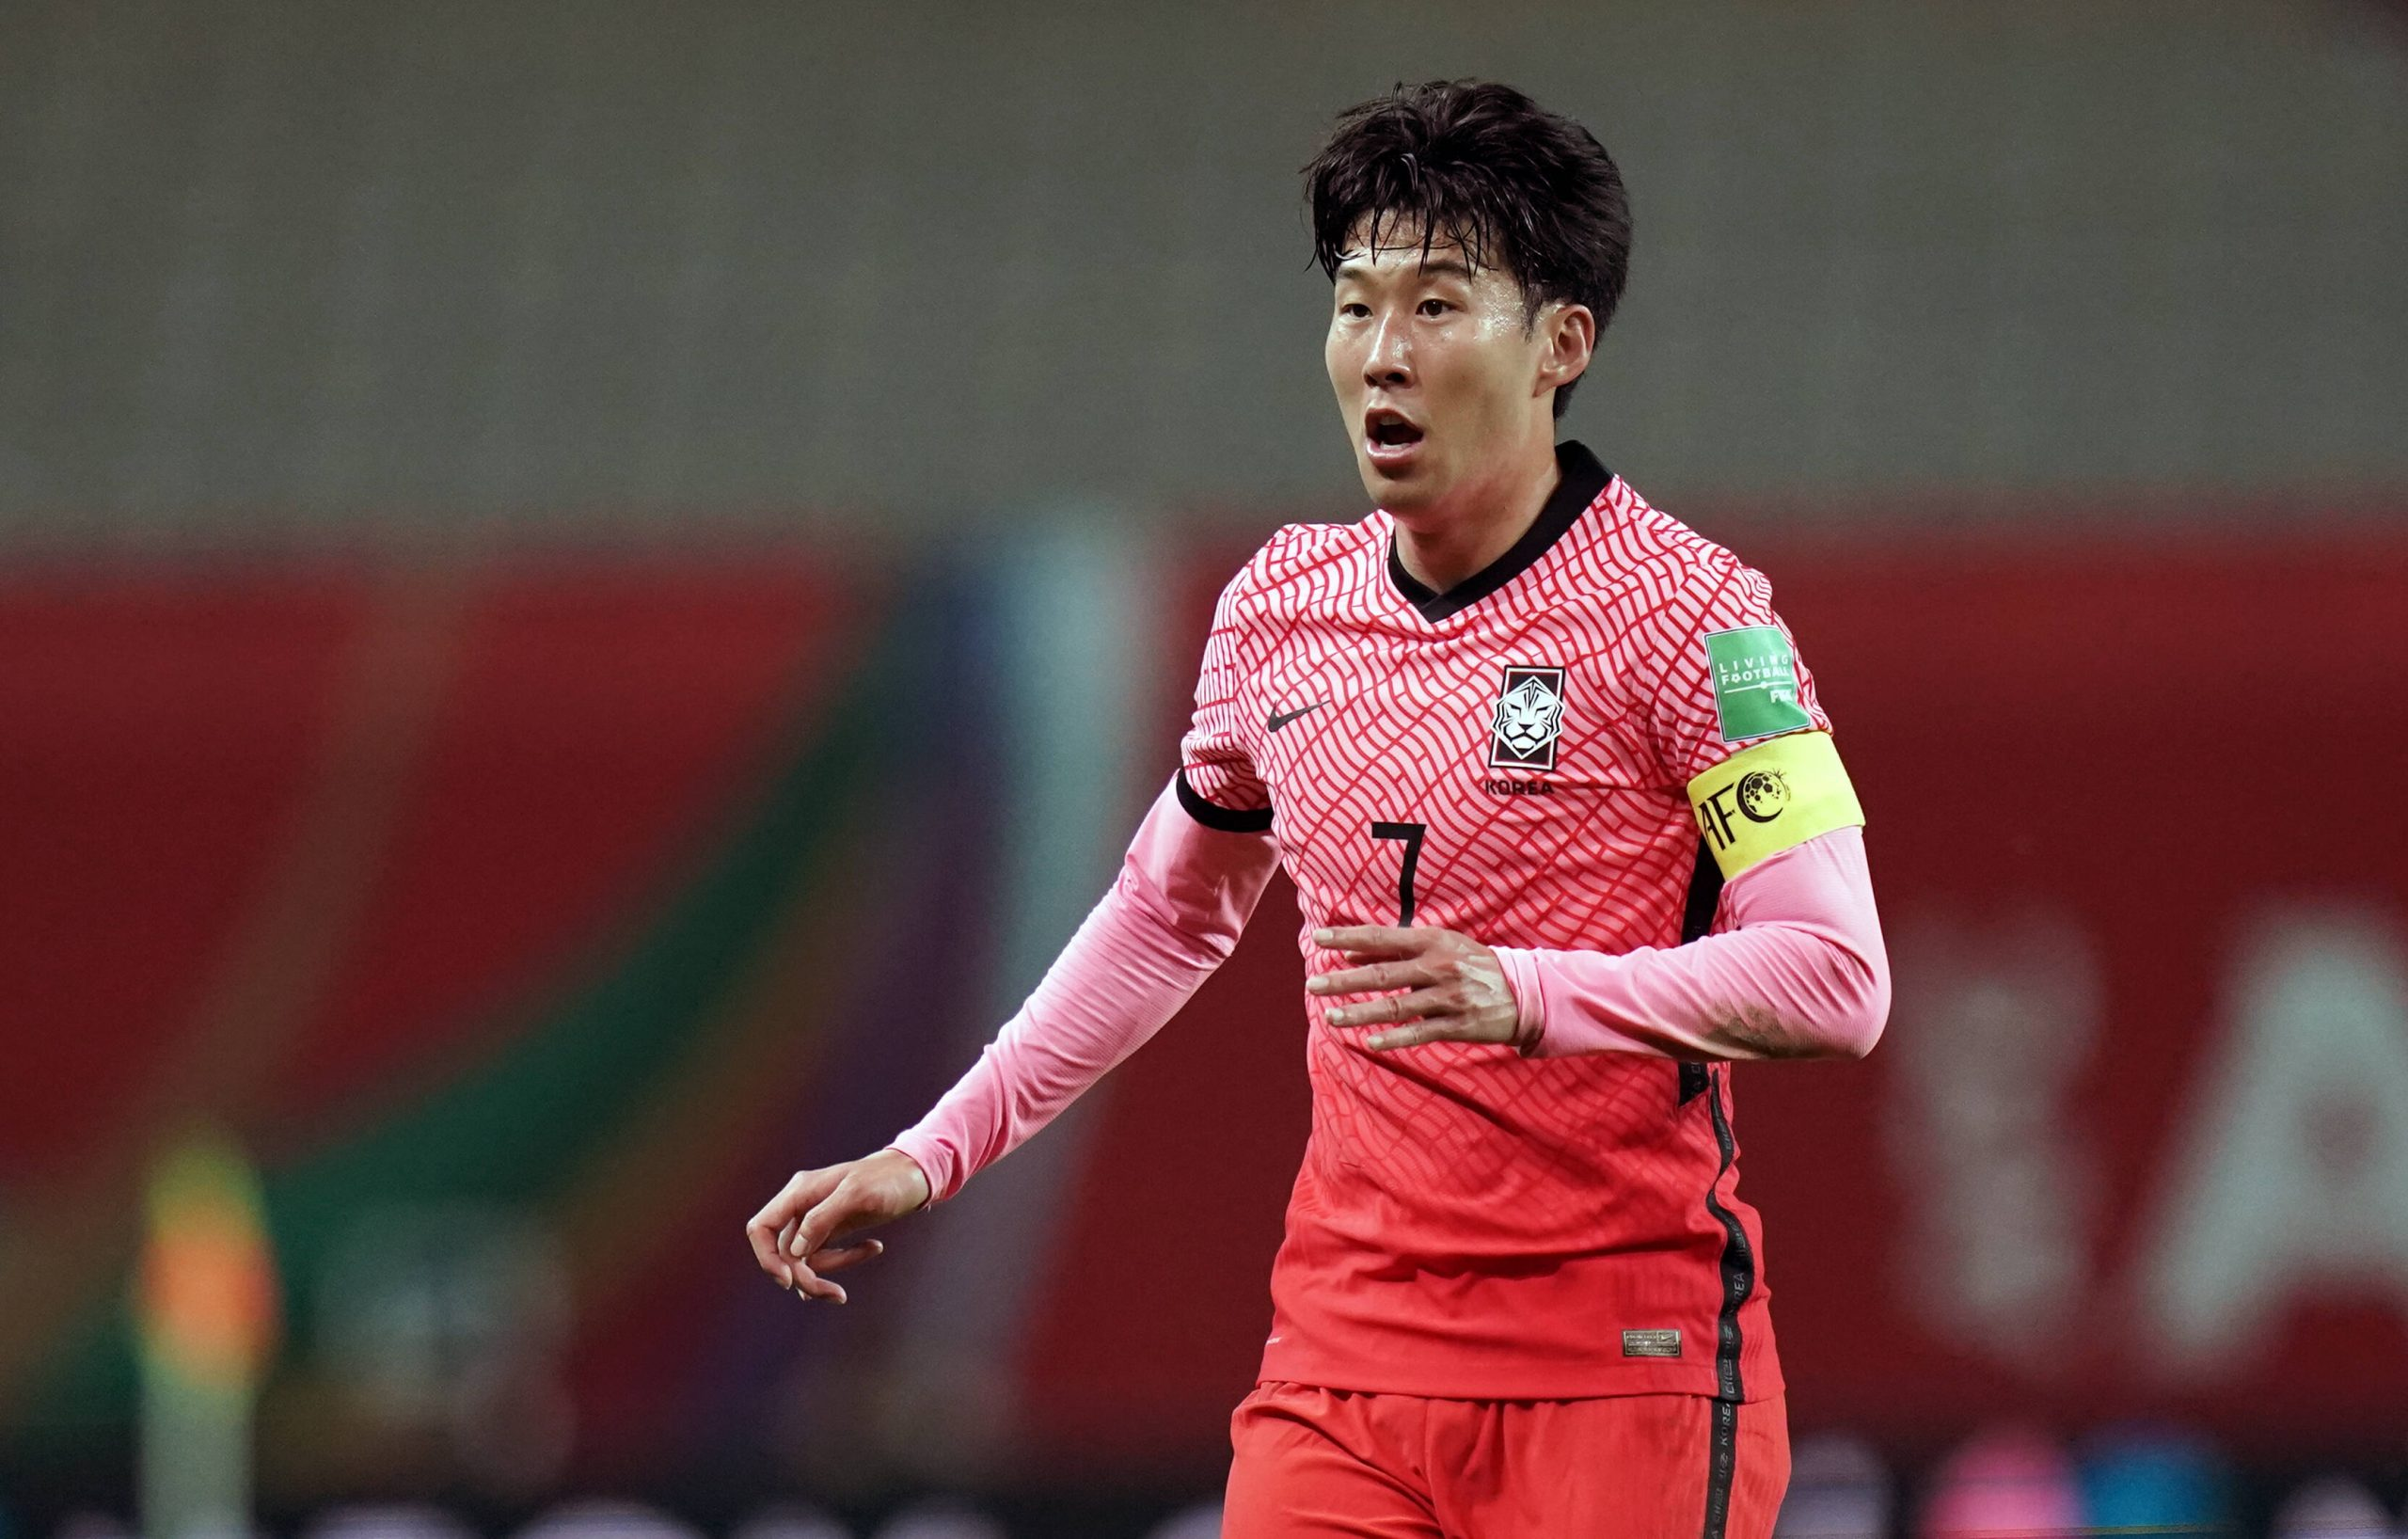 Heung-min Son of Tottenham Hotspur in action for South Korea.